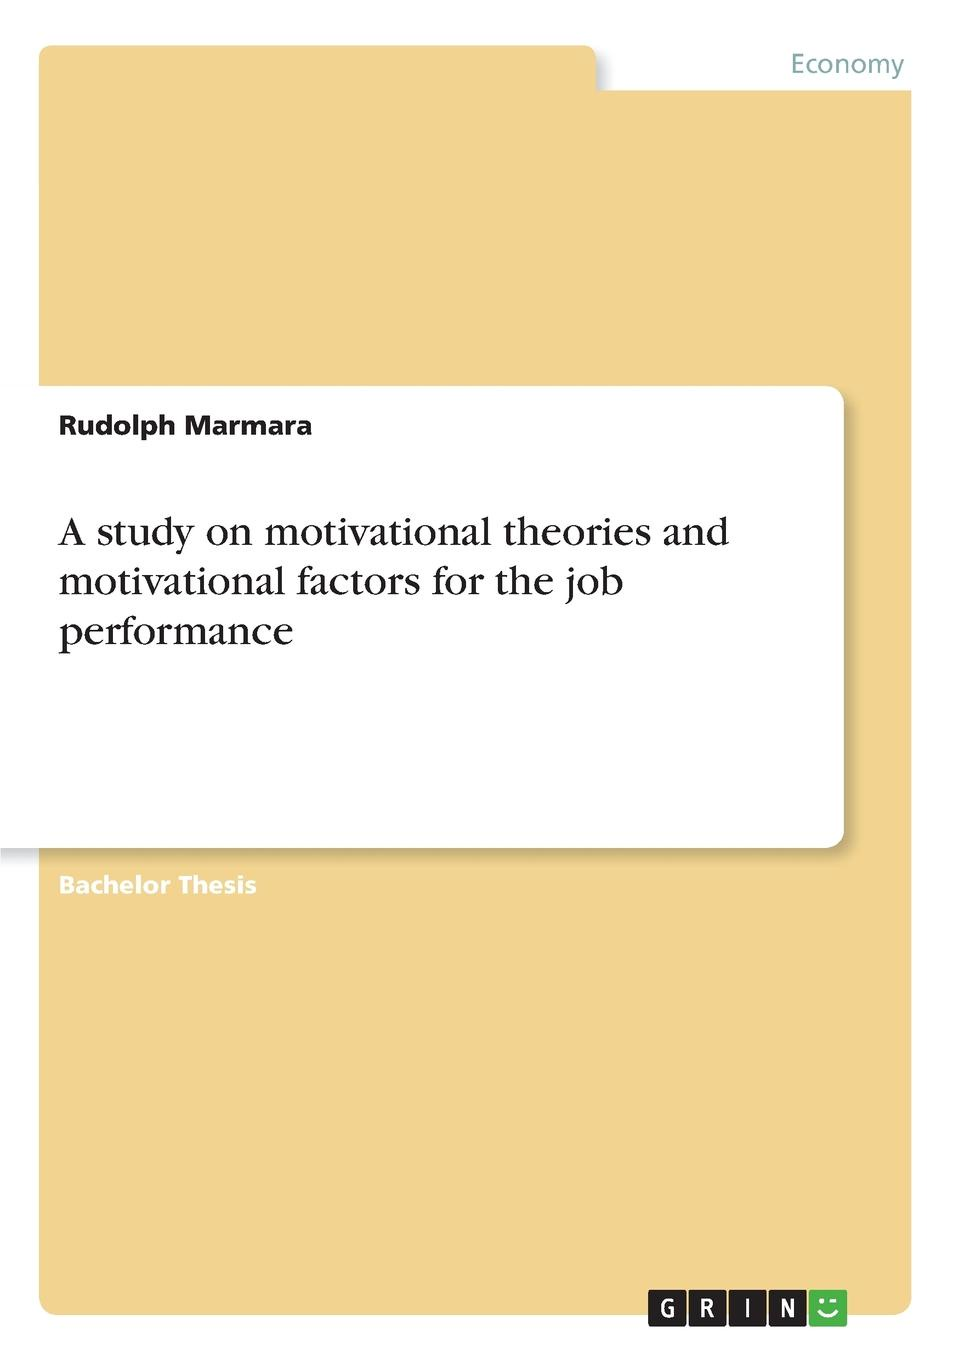 Rudolph Marmara A study on motivational theories and motivational factors for the job performance motivation and action